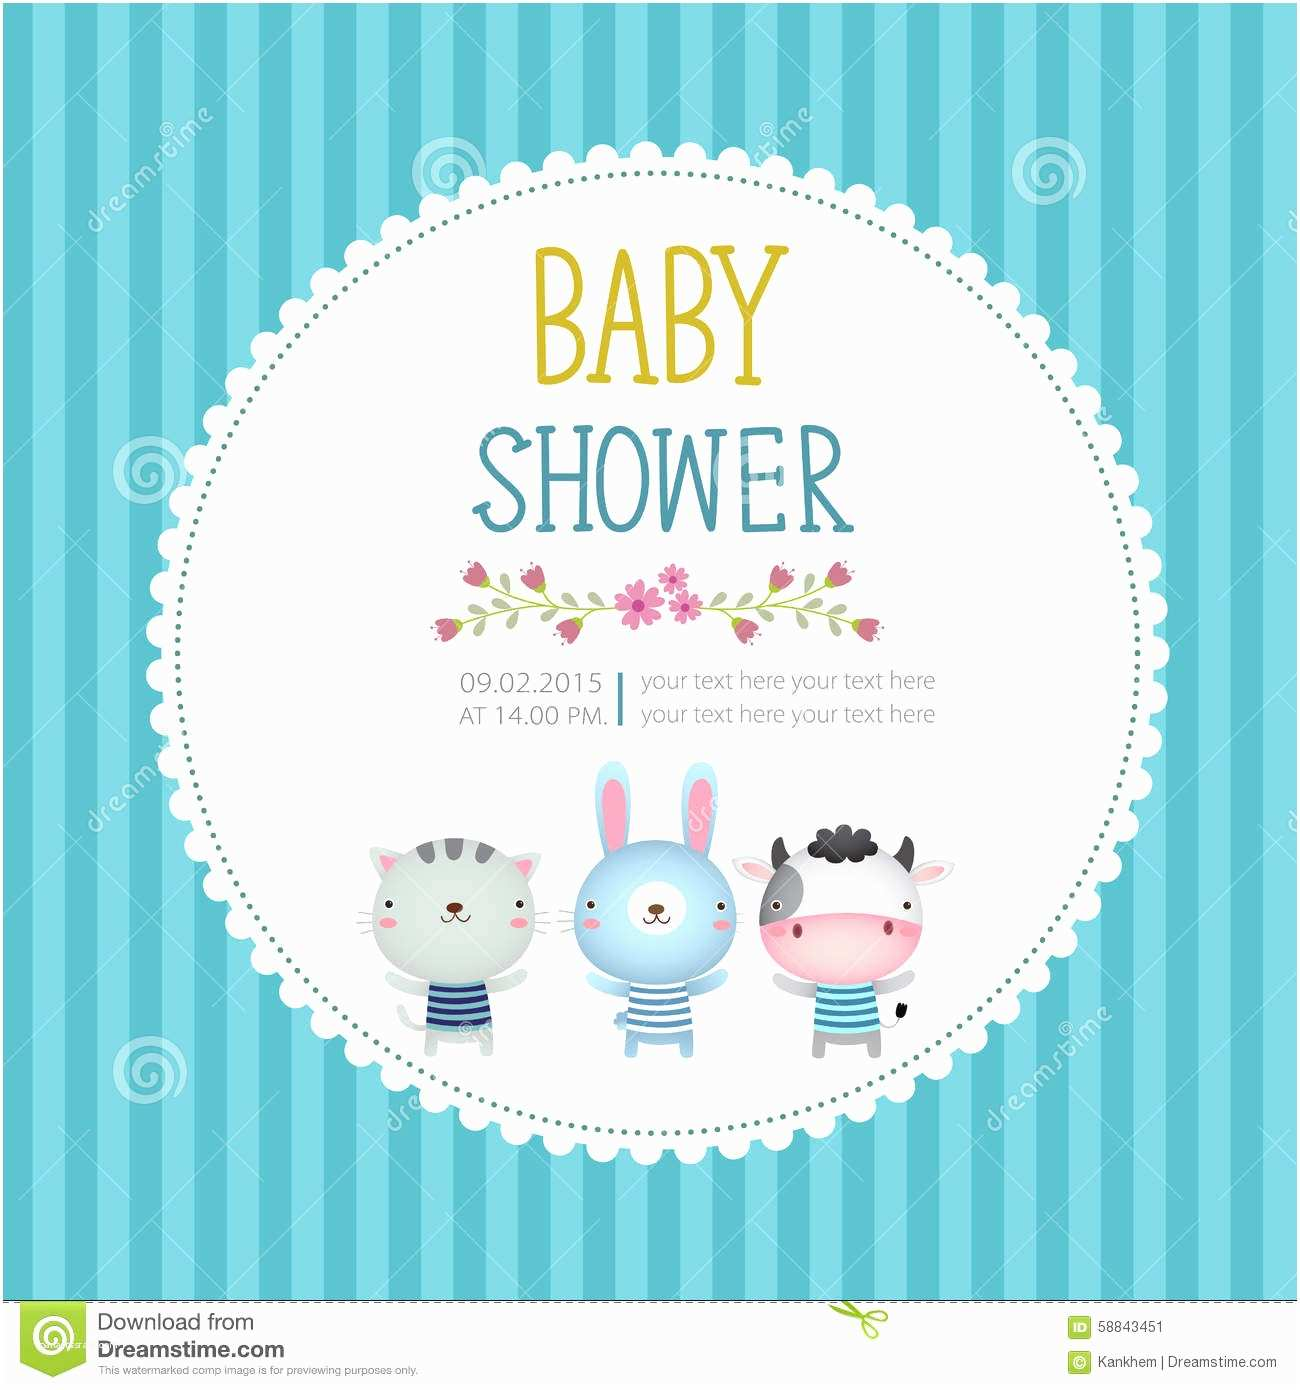 Baby Shower Invitation Cards Baby Shower Invitation Card Template Blue Background Stock